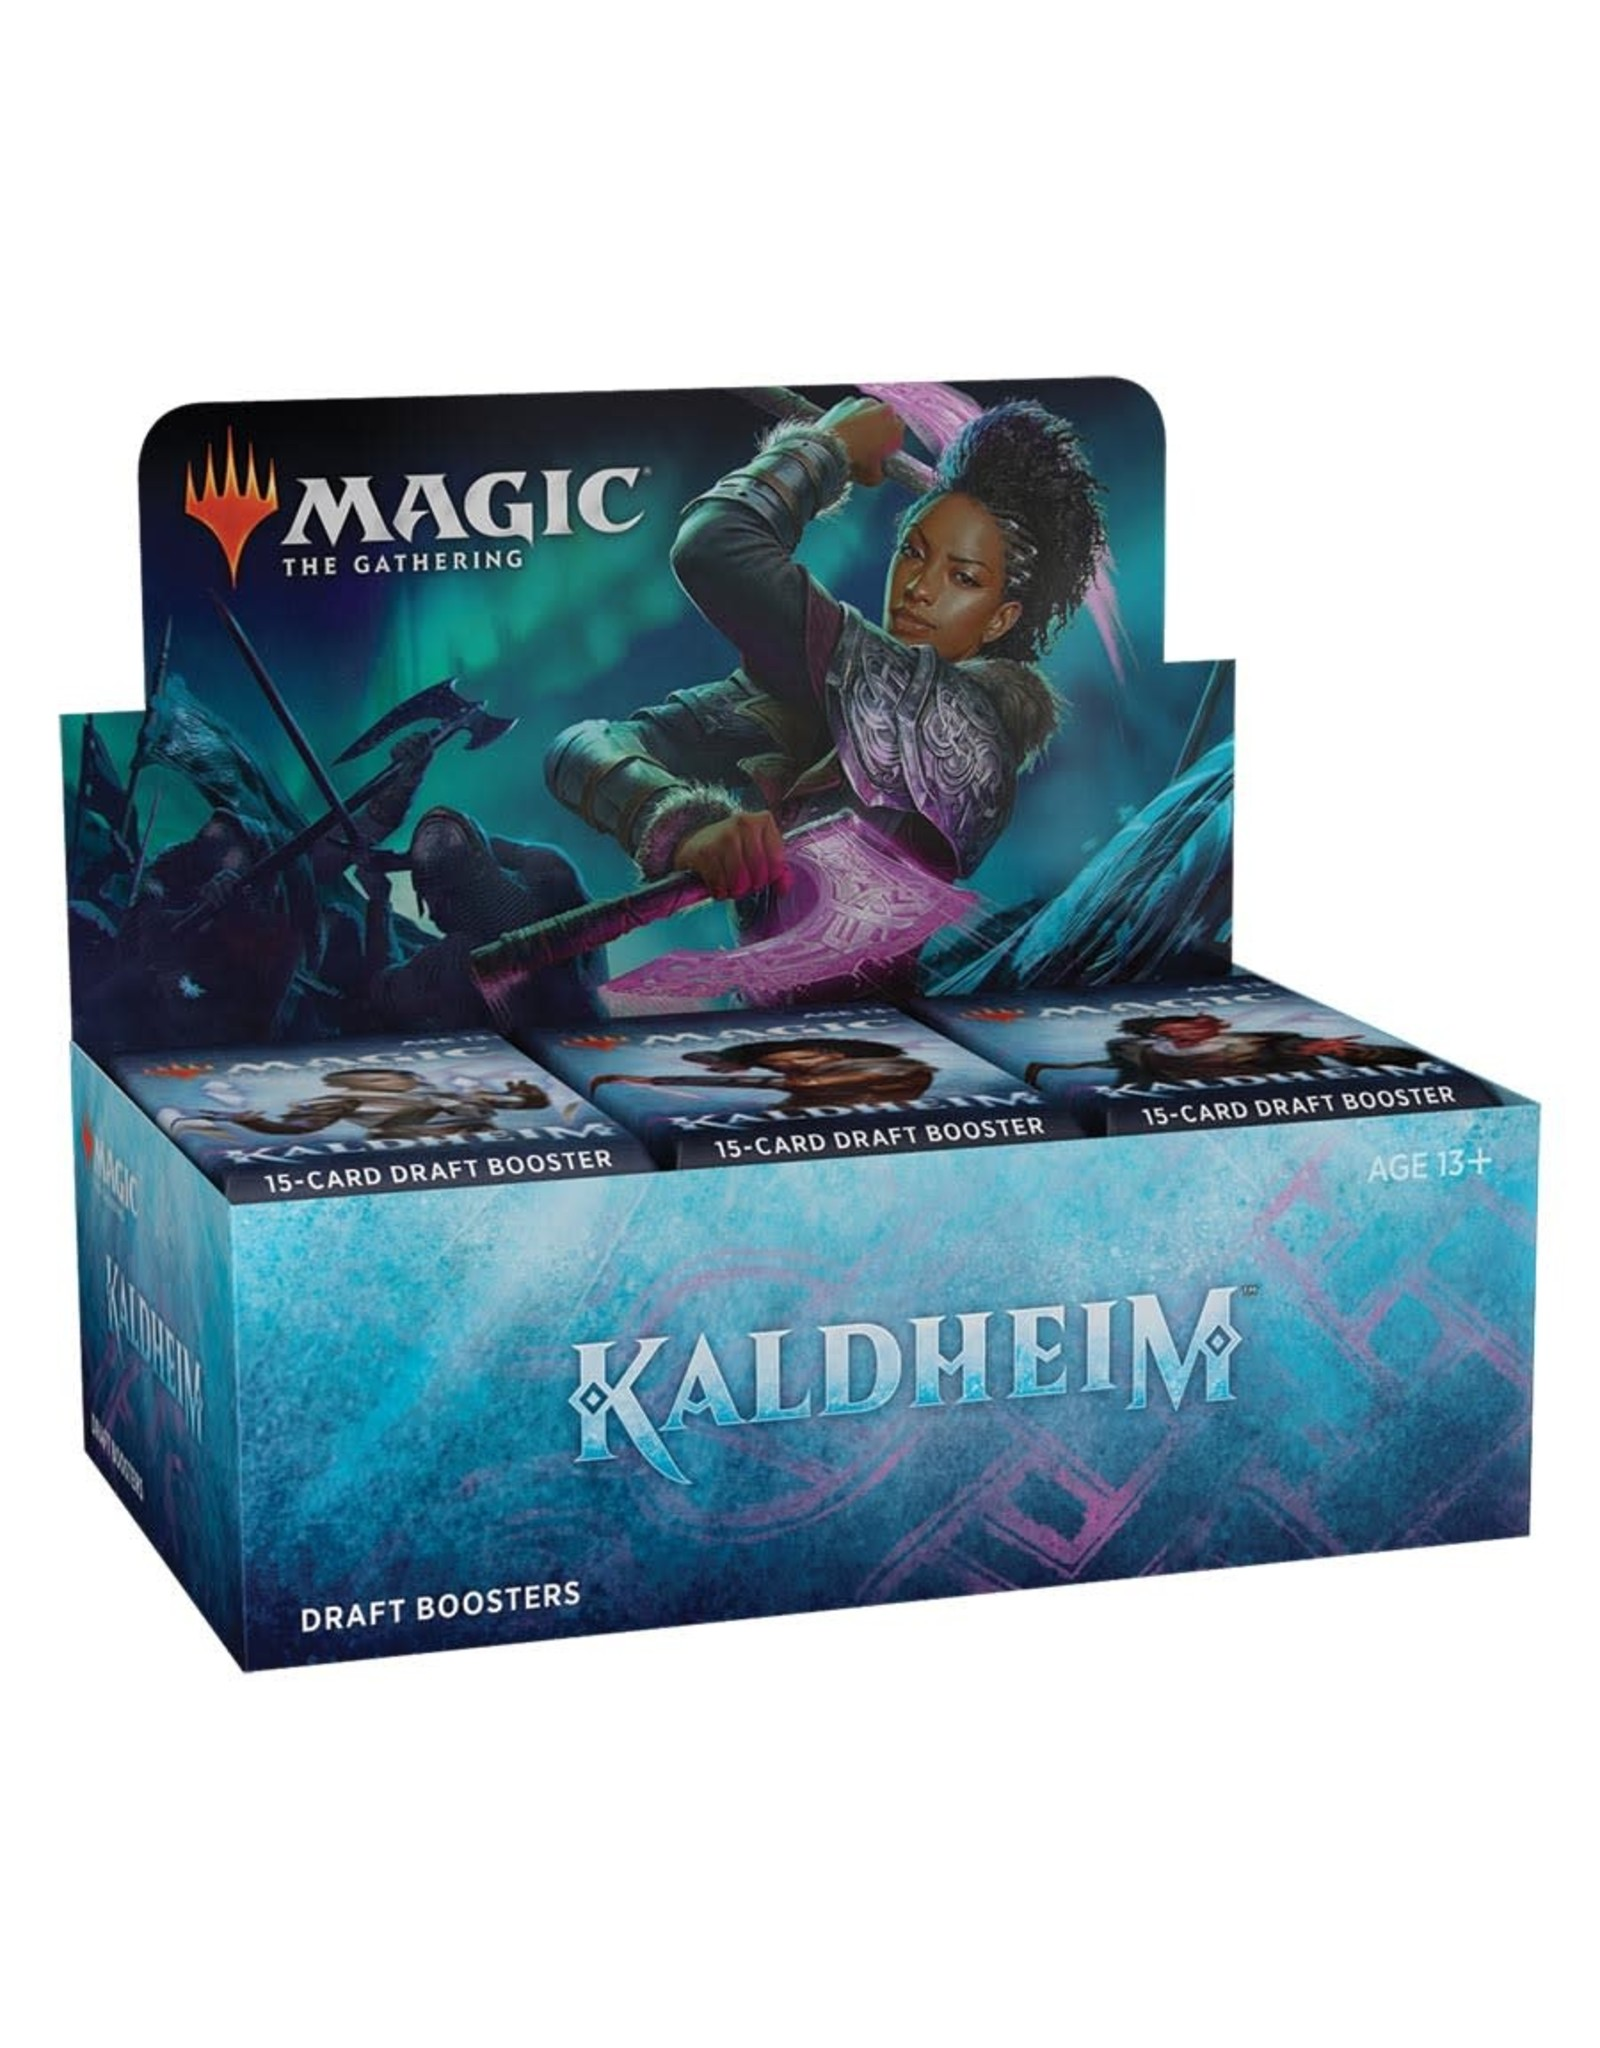 WIZARDS OF THE COAST MAGIC THE GATHERING KALDHEIM DRAFT BOOSTER BOX